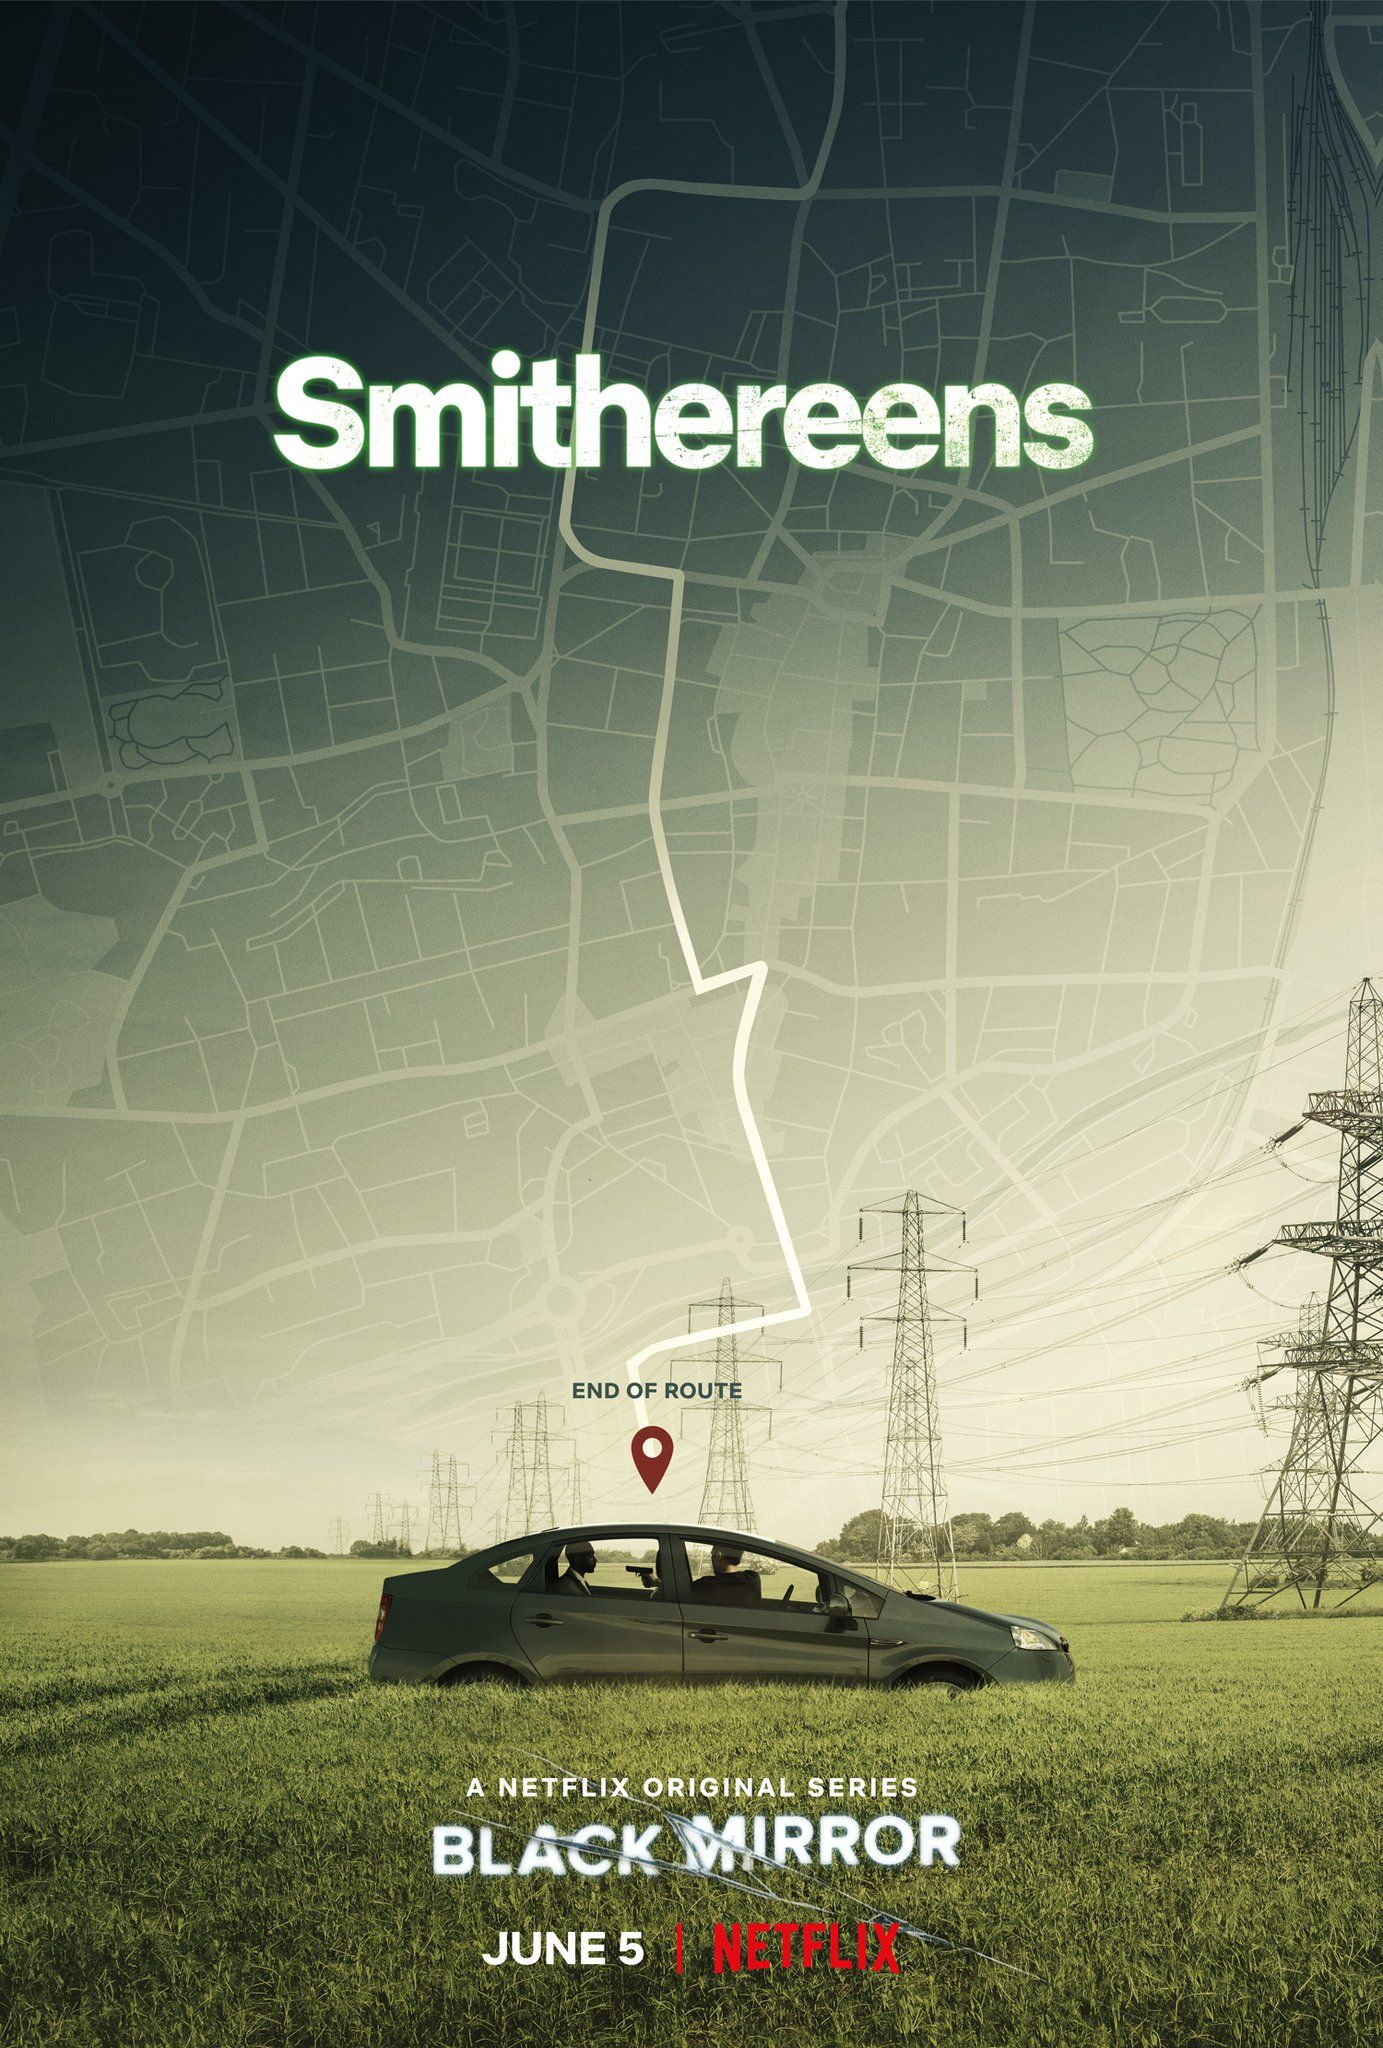 Black Mirror Smithereens Ending Explained: What Happened